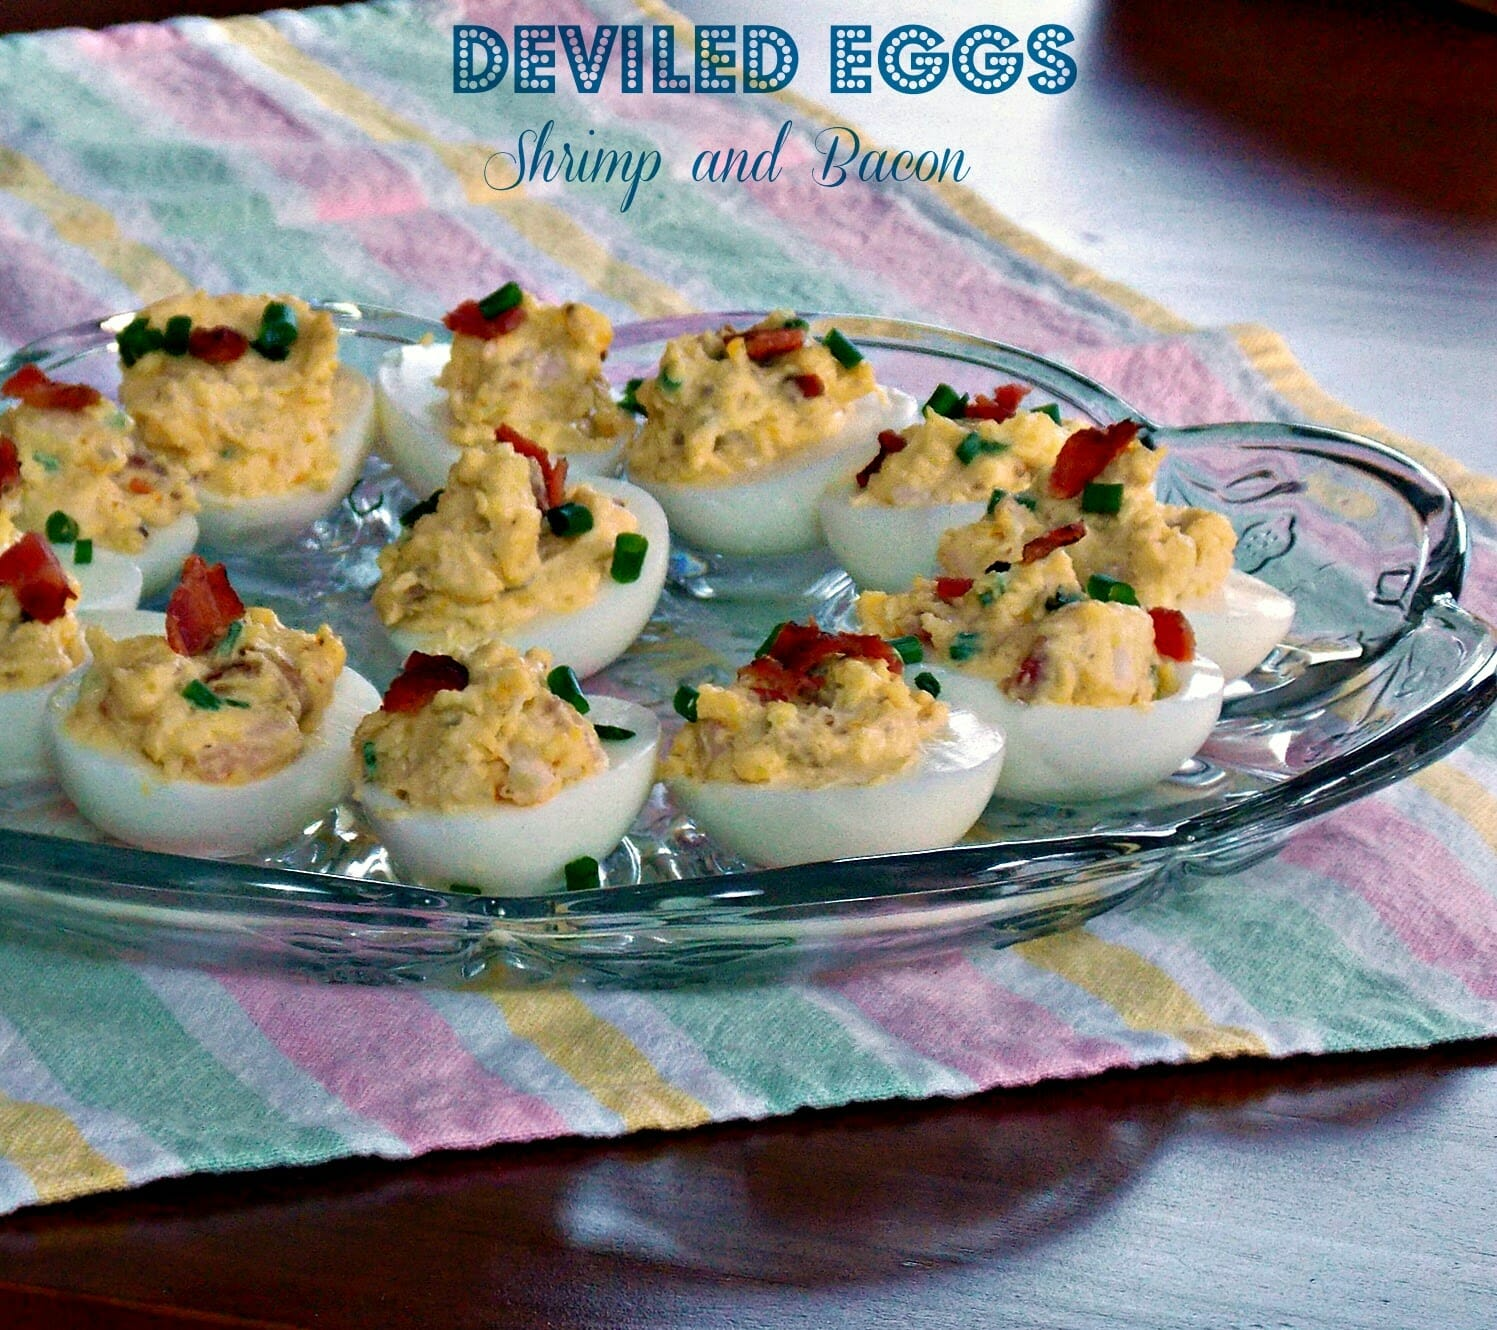 Deviled Eggs with Shrimp and Bacon